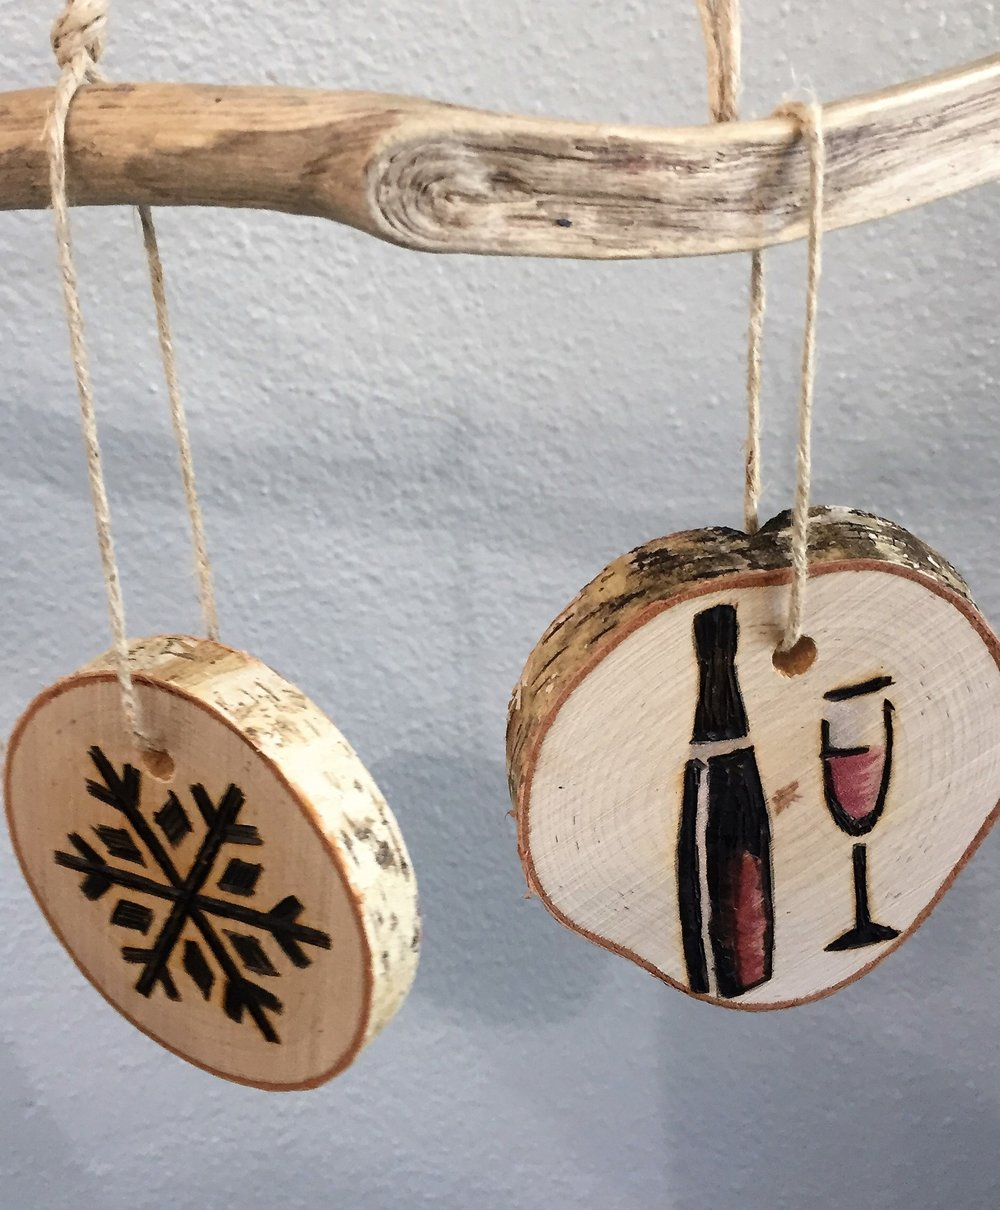 wood burned ornaments.JPG